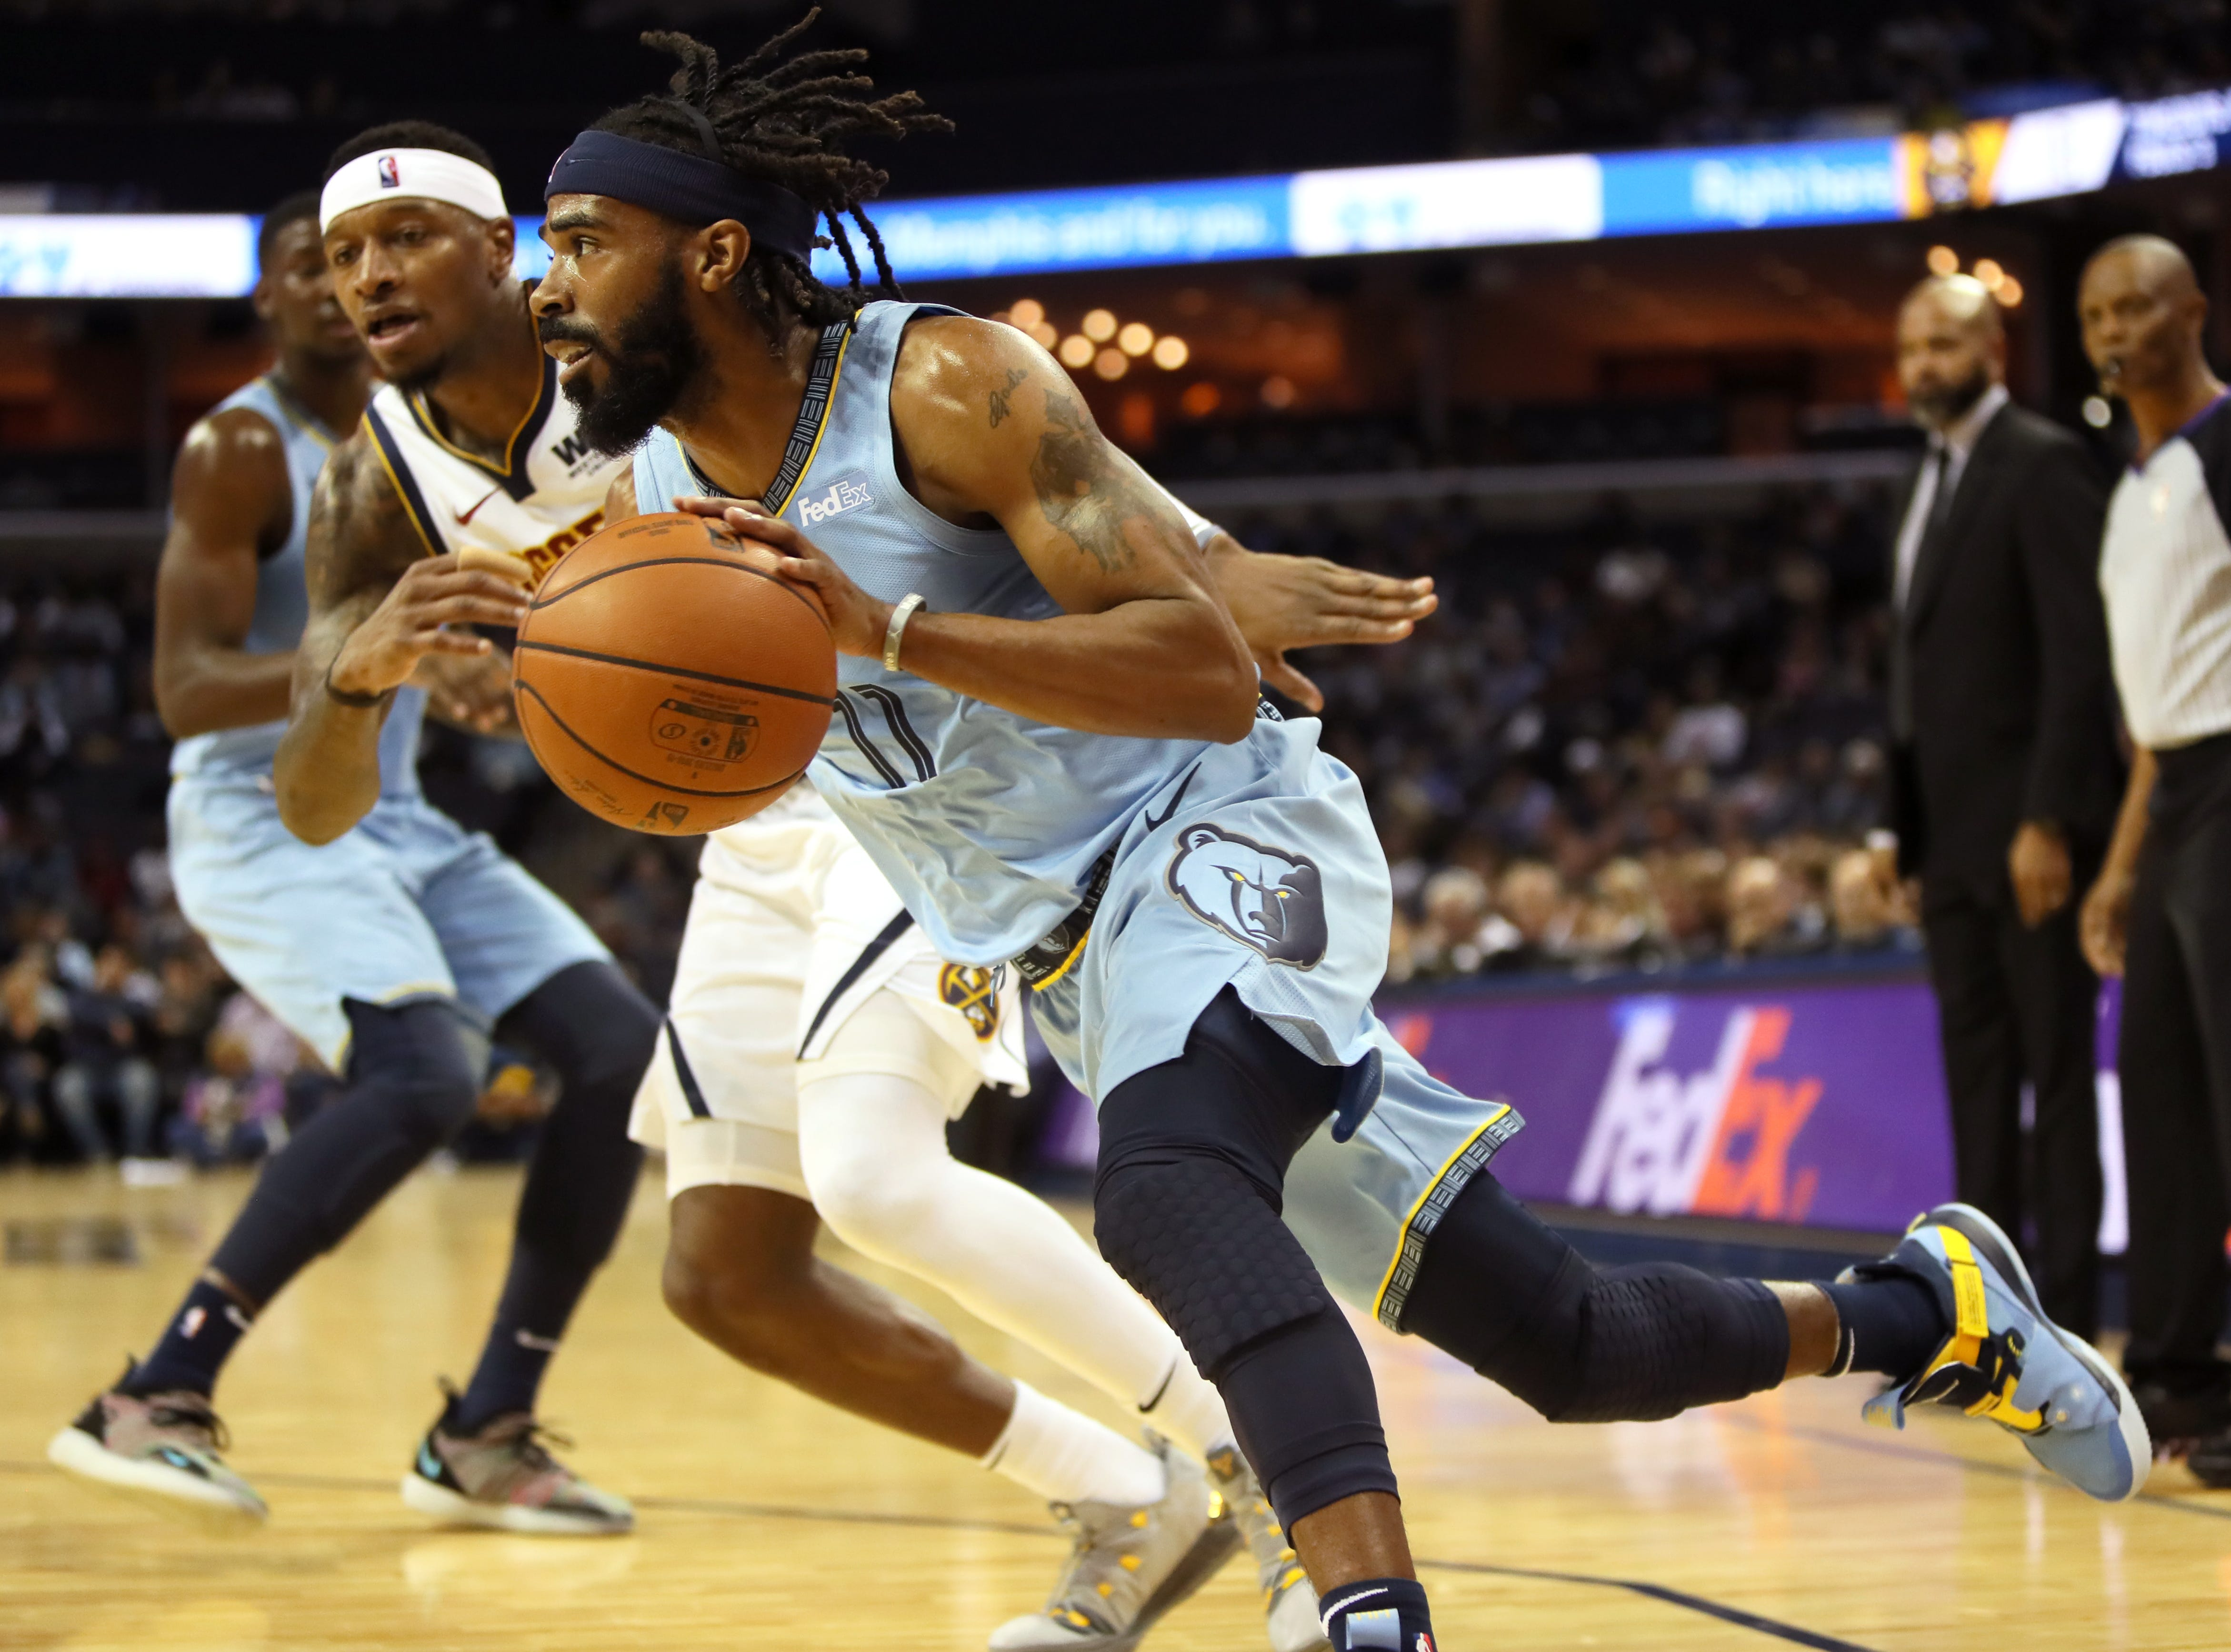 Memphis Grizzlies guard Mike Conley drives past Denver Nuggets forward Torrey Craig during their game at the FedExForum on Wednesday, November 7, 2018.